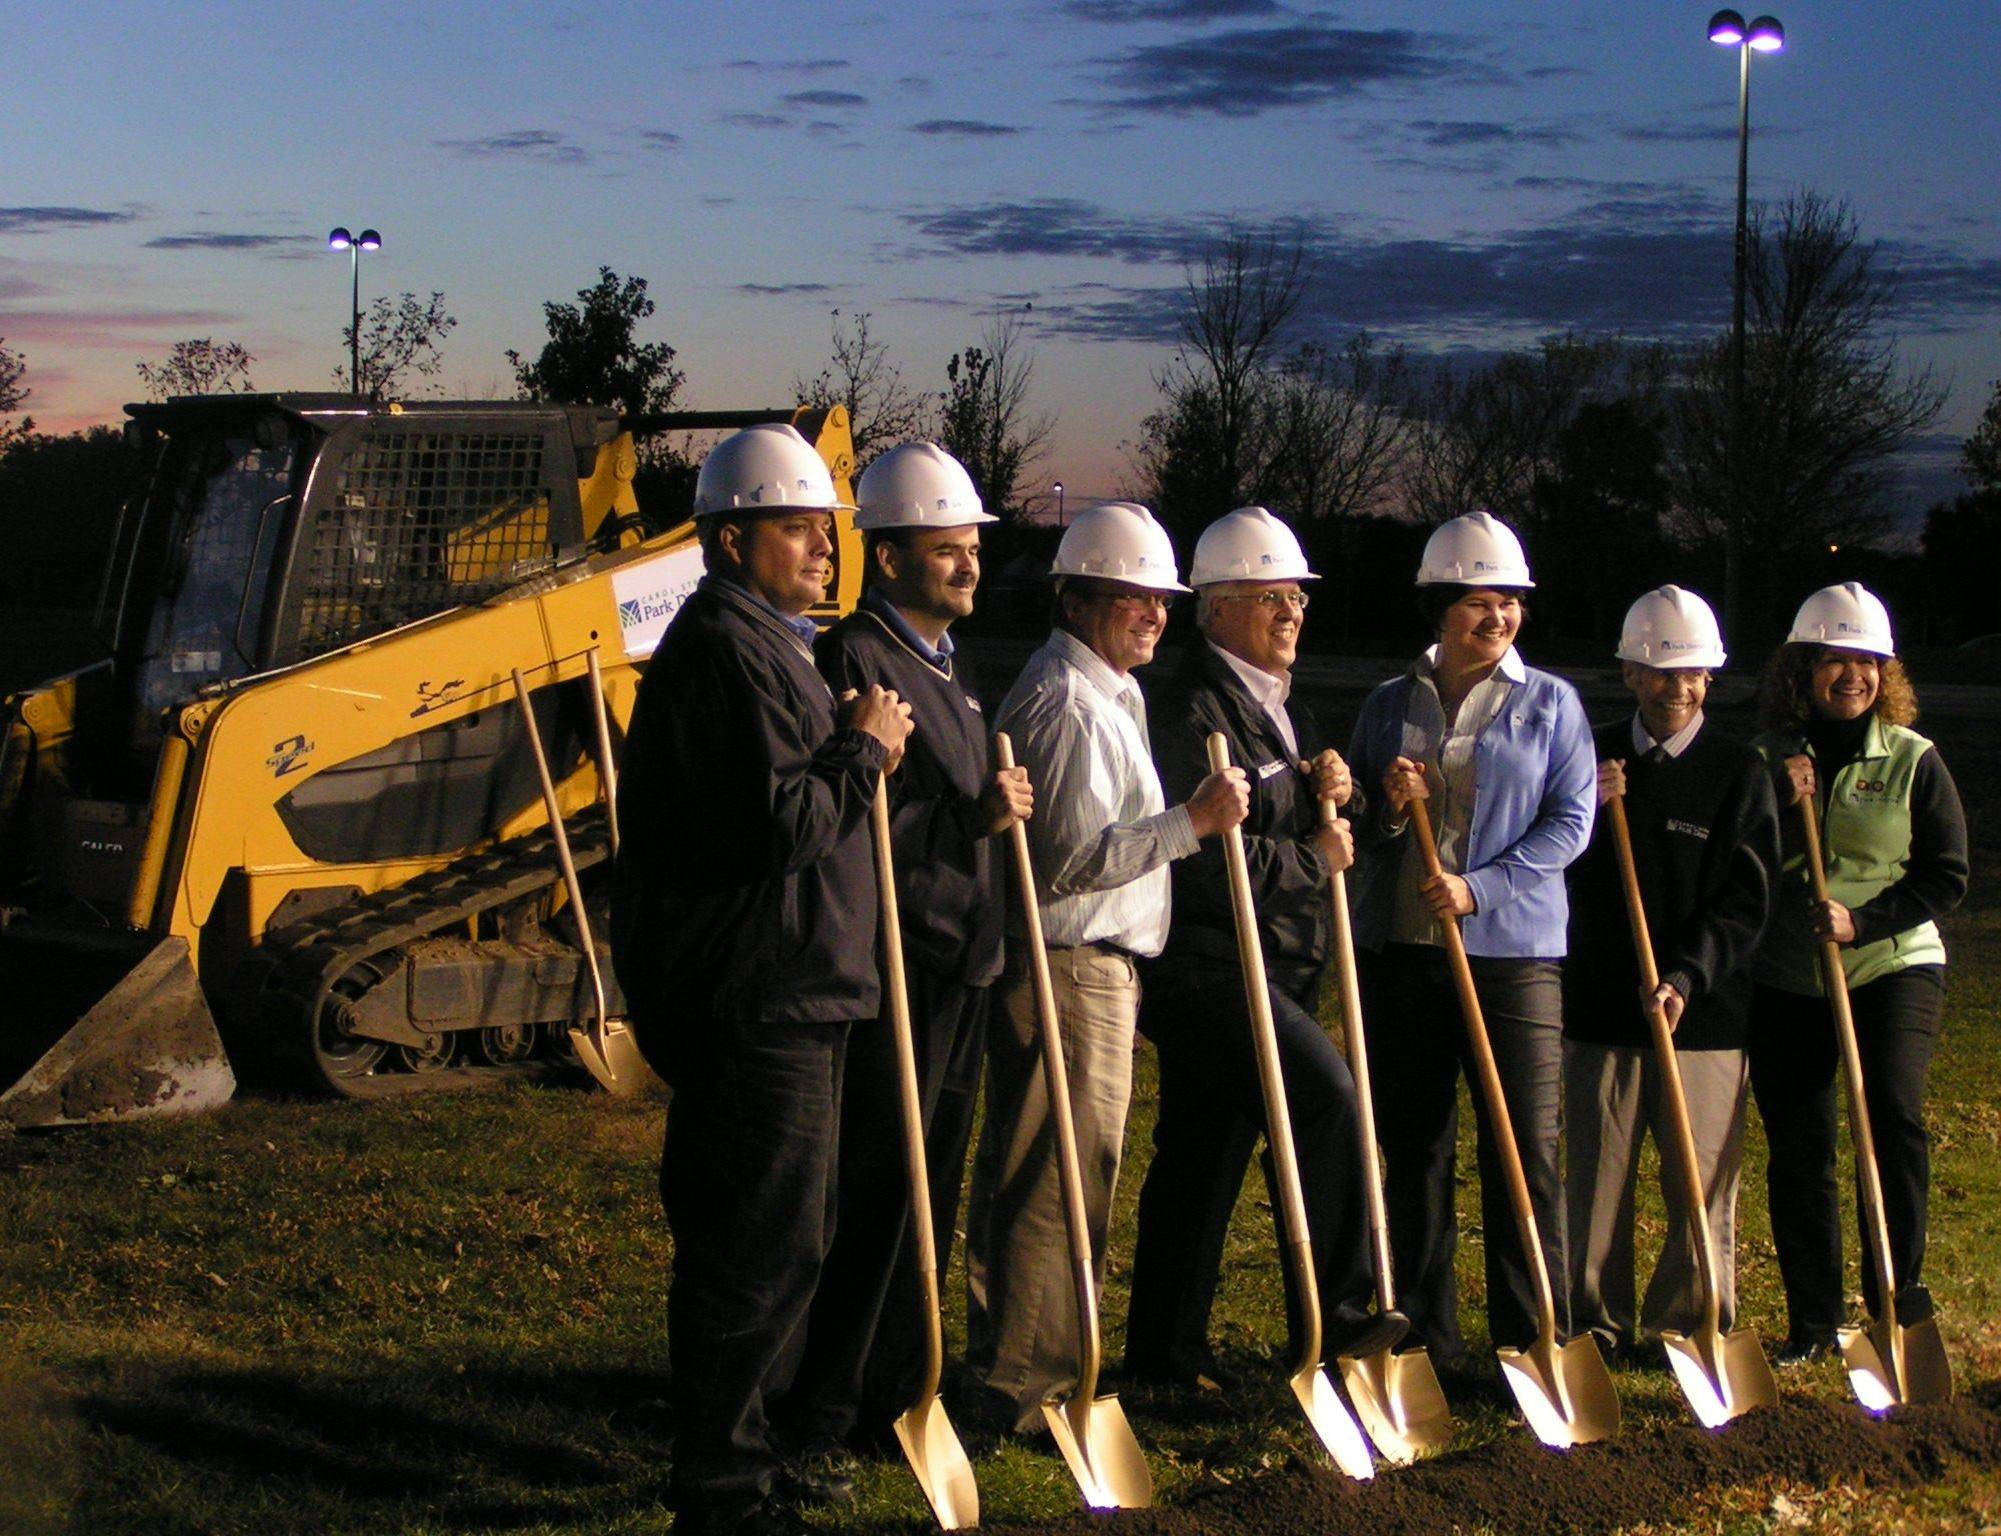 Members of the Carol Stream Park District board of commissioners break ground on a planned $18 million recreation center at the Town Center Monday night.